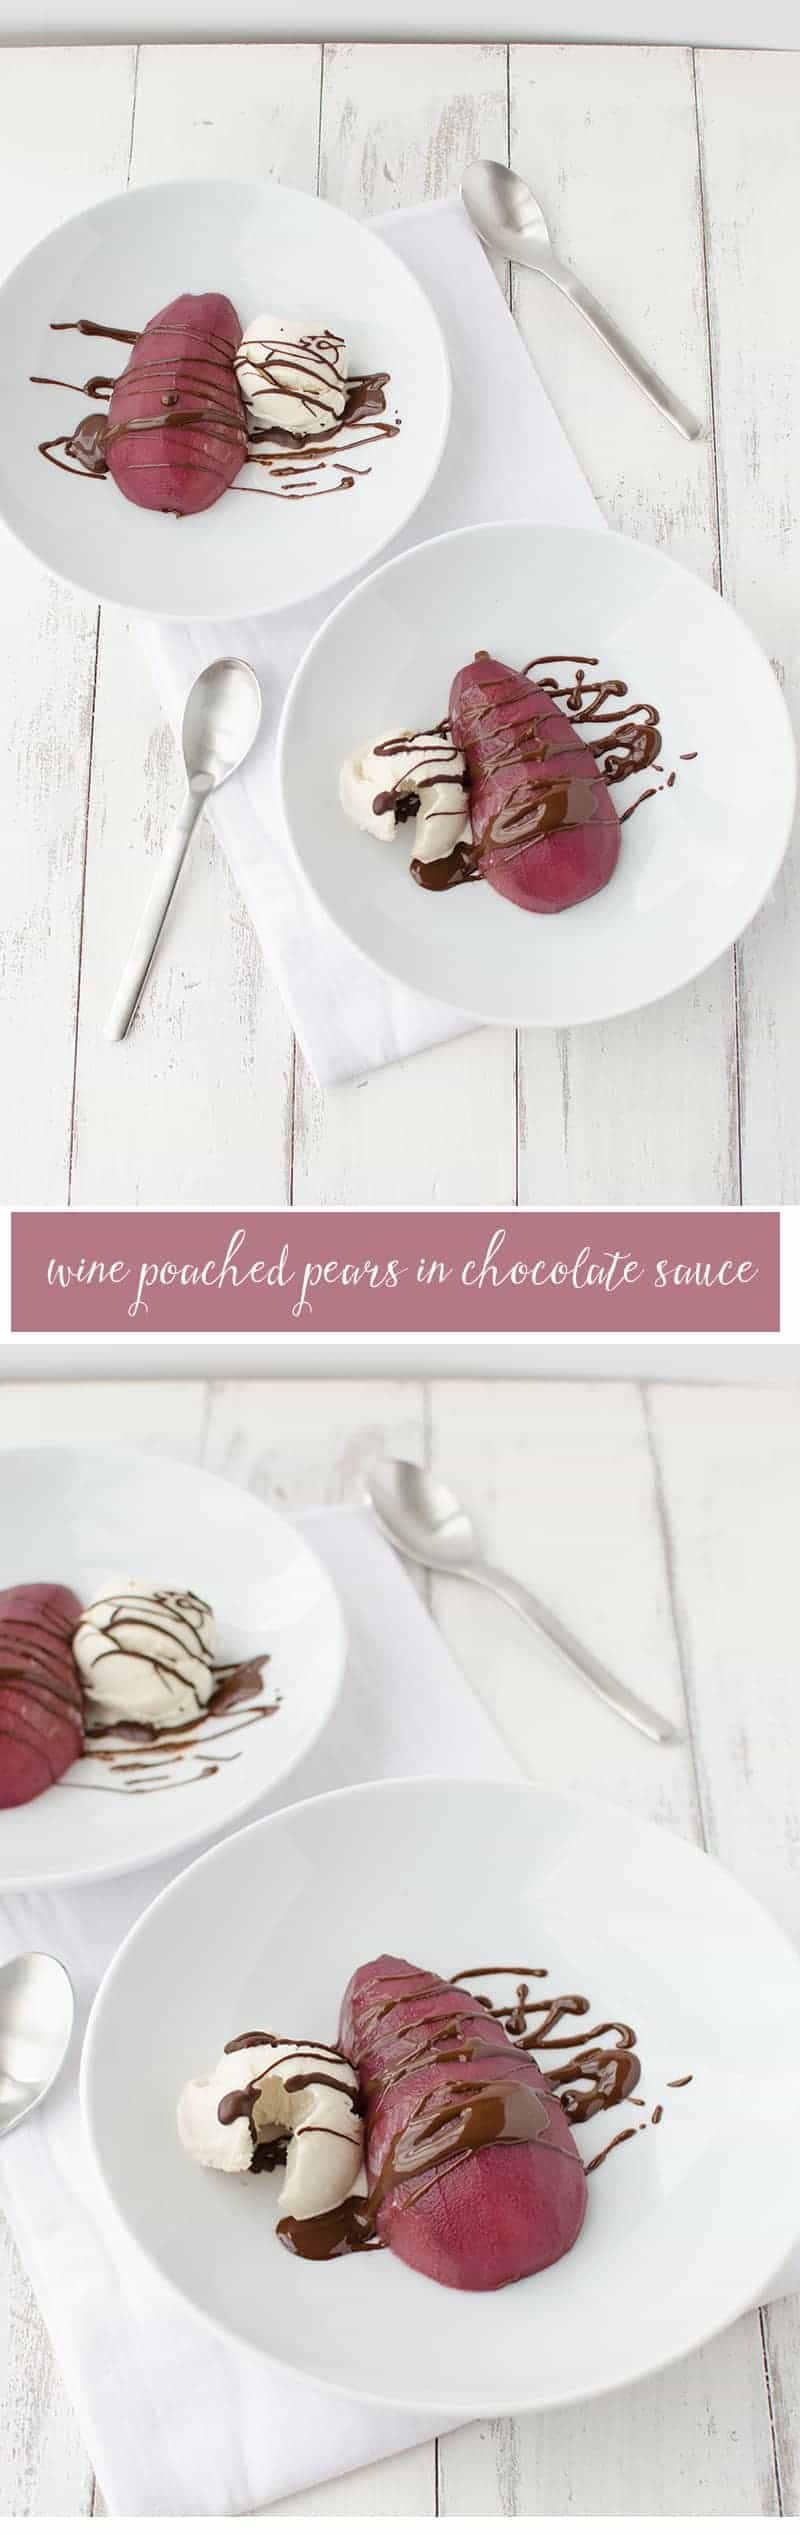 Wine Poached Pears in Chocolate Sauce! The perfect healthy recipe for fall! Gluten-free, vegan, and low-fat! | www.delishknowledge.com